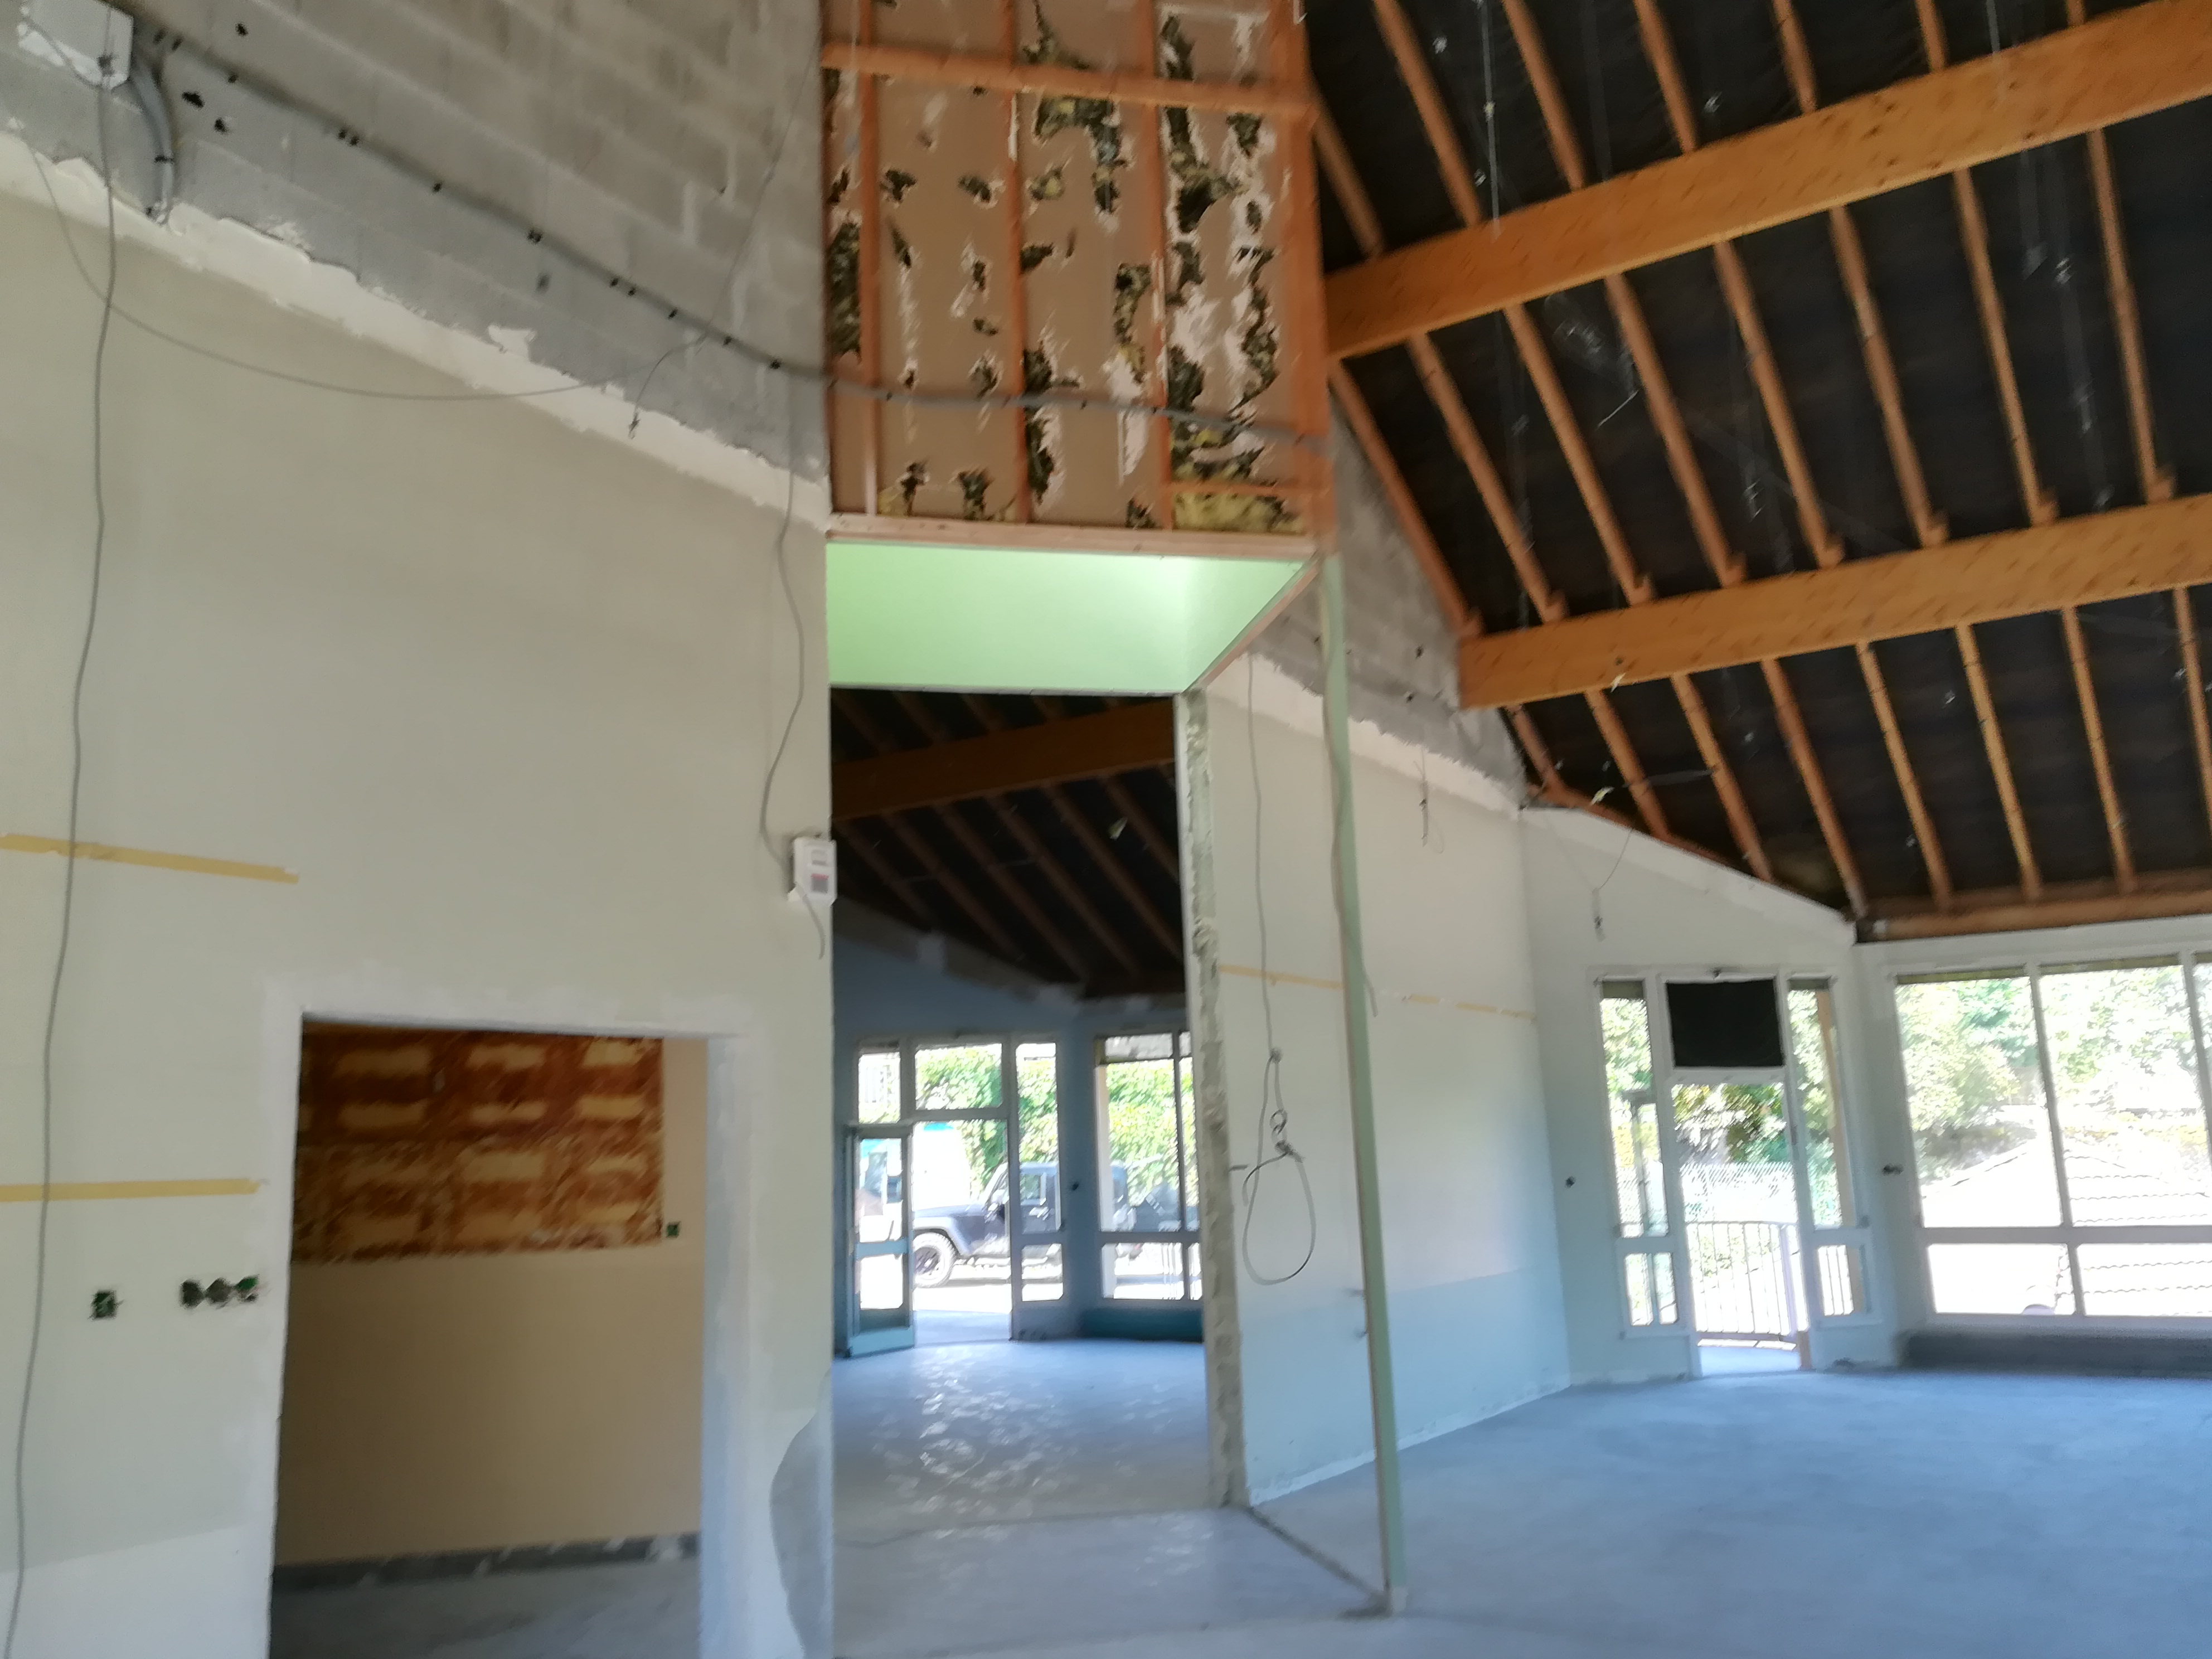 travaux-groupe-scolaire-phase1.jpg